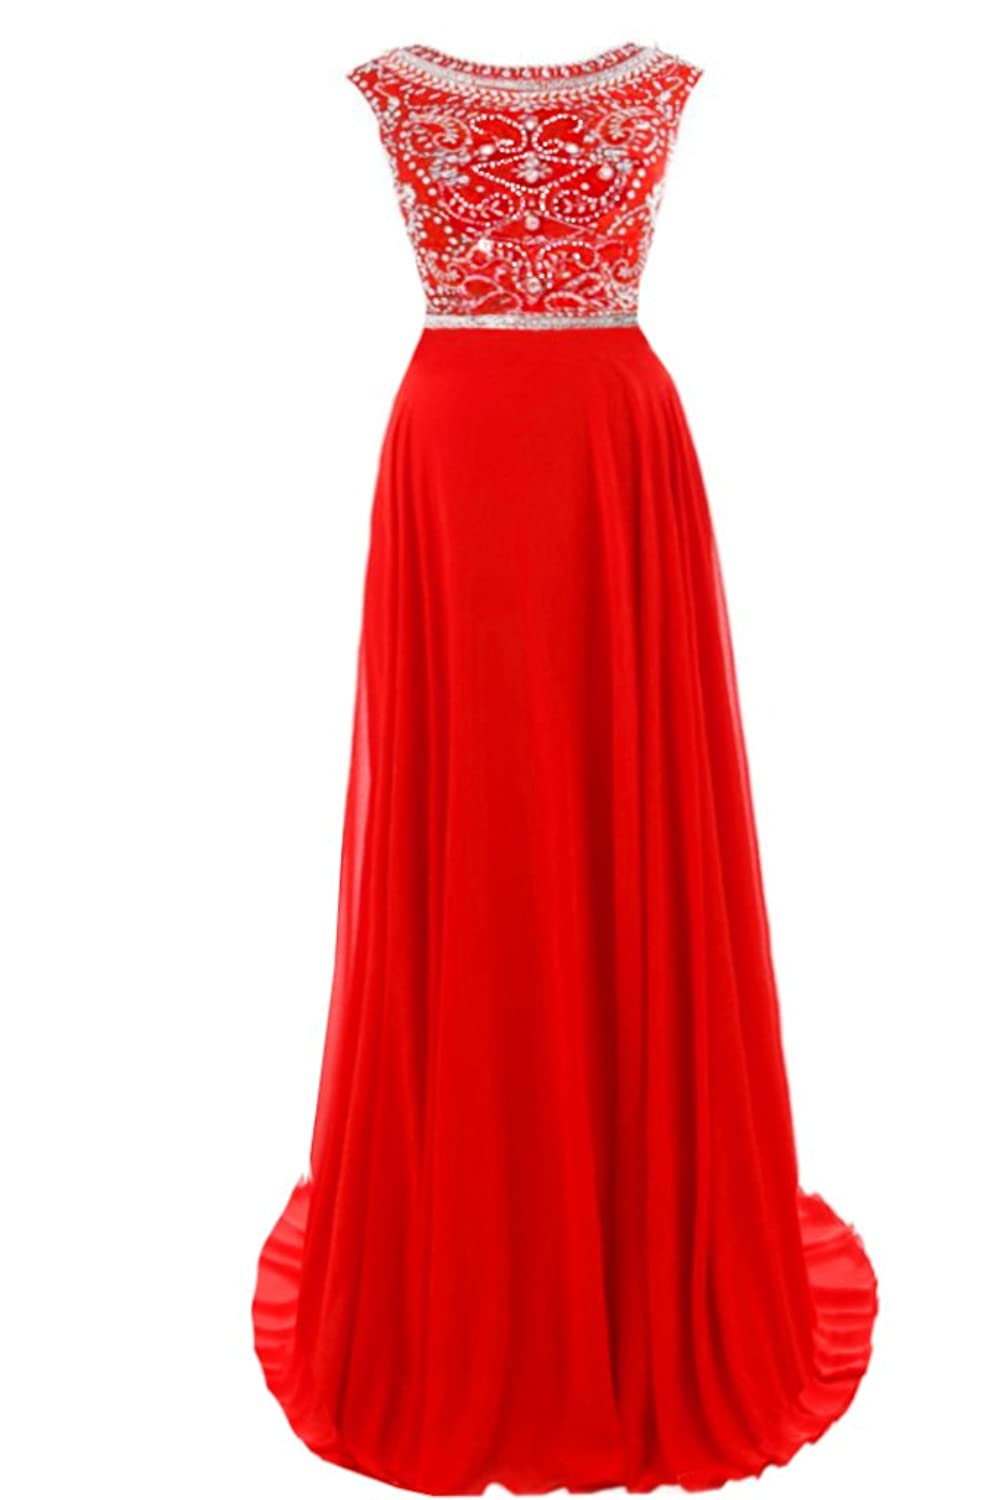 Promonline long prom dresses sequins beaded chiffon evening party